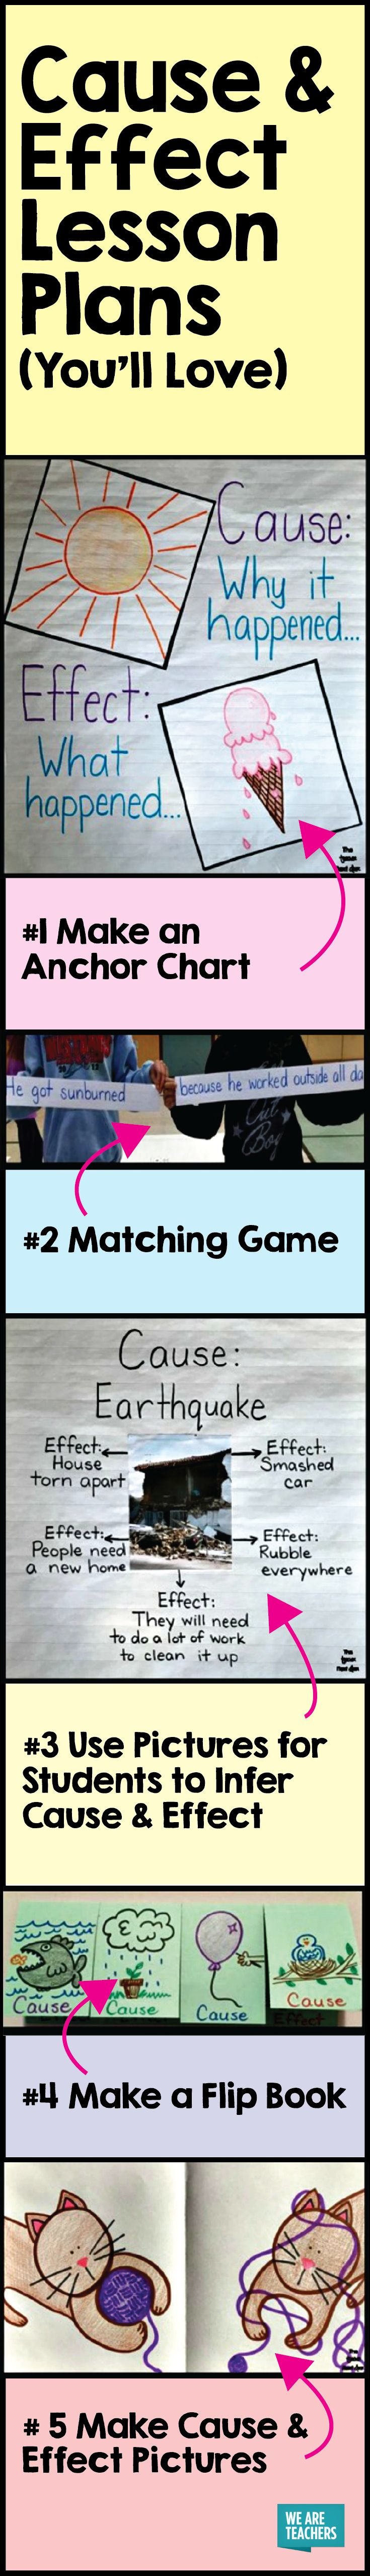 12 Cause-and-Effect Lesson Plans You'll Love - WeAreTeachers